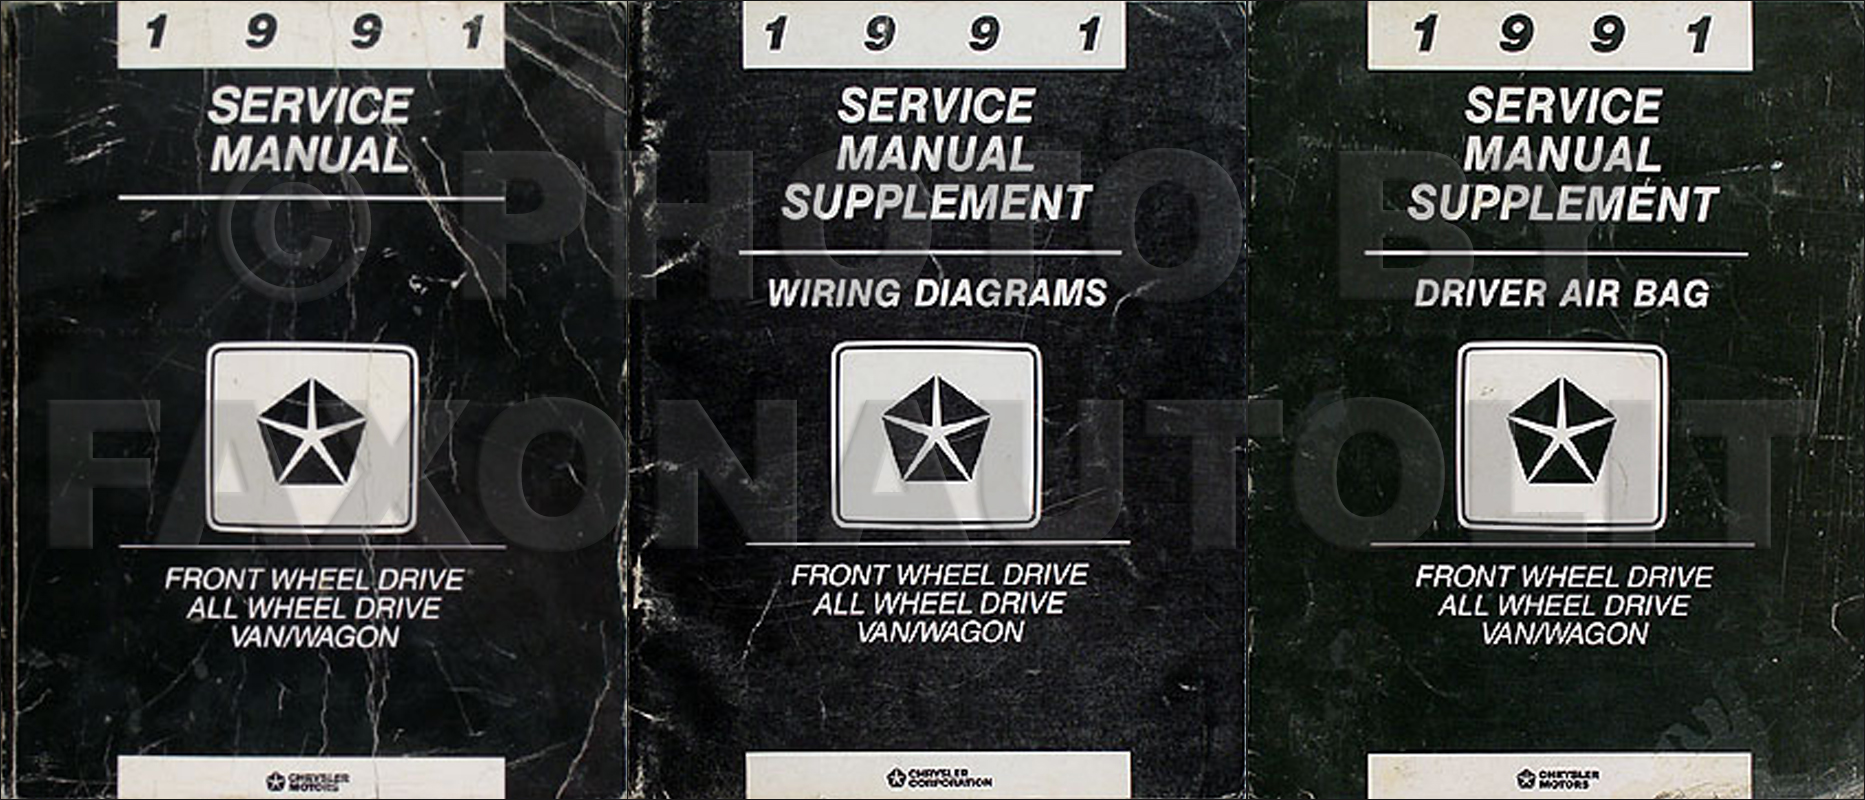 Well Town And Country Wiring Diagrams On 1934 Dodge Wiring Diagrams